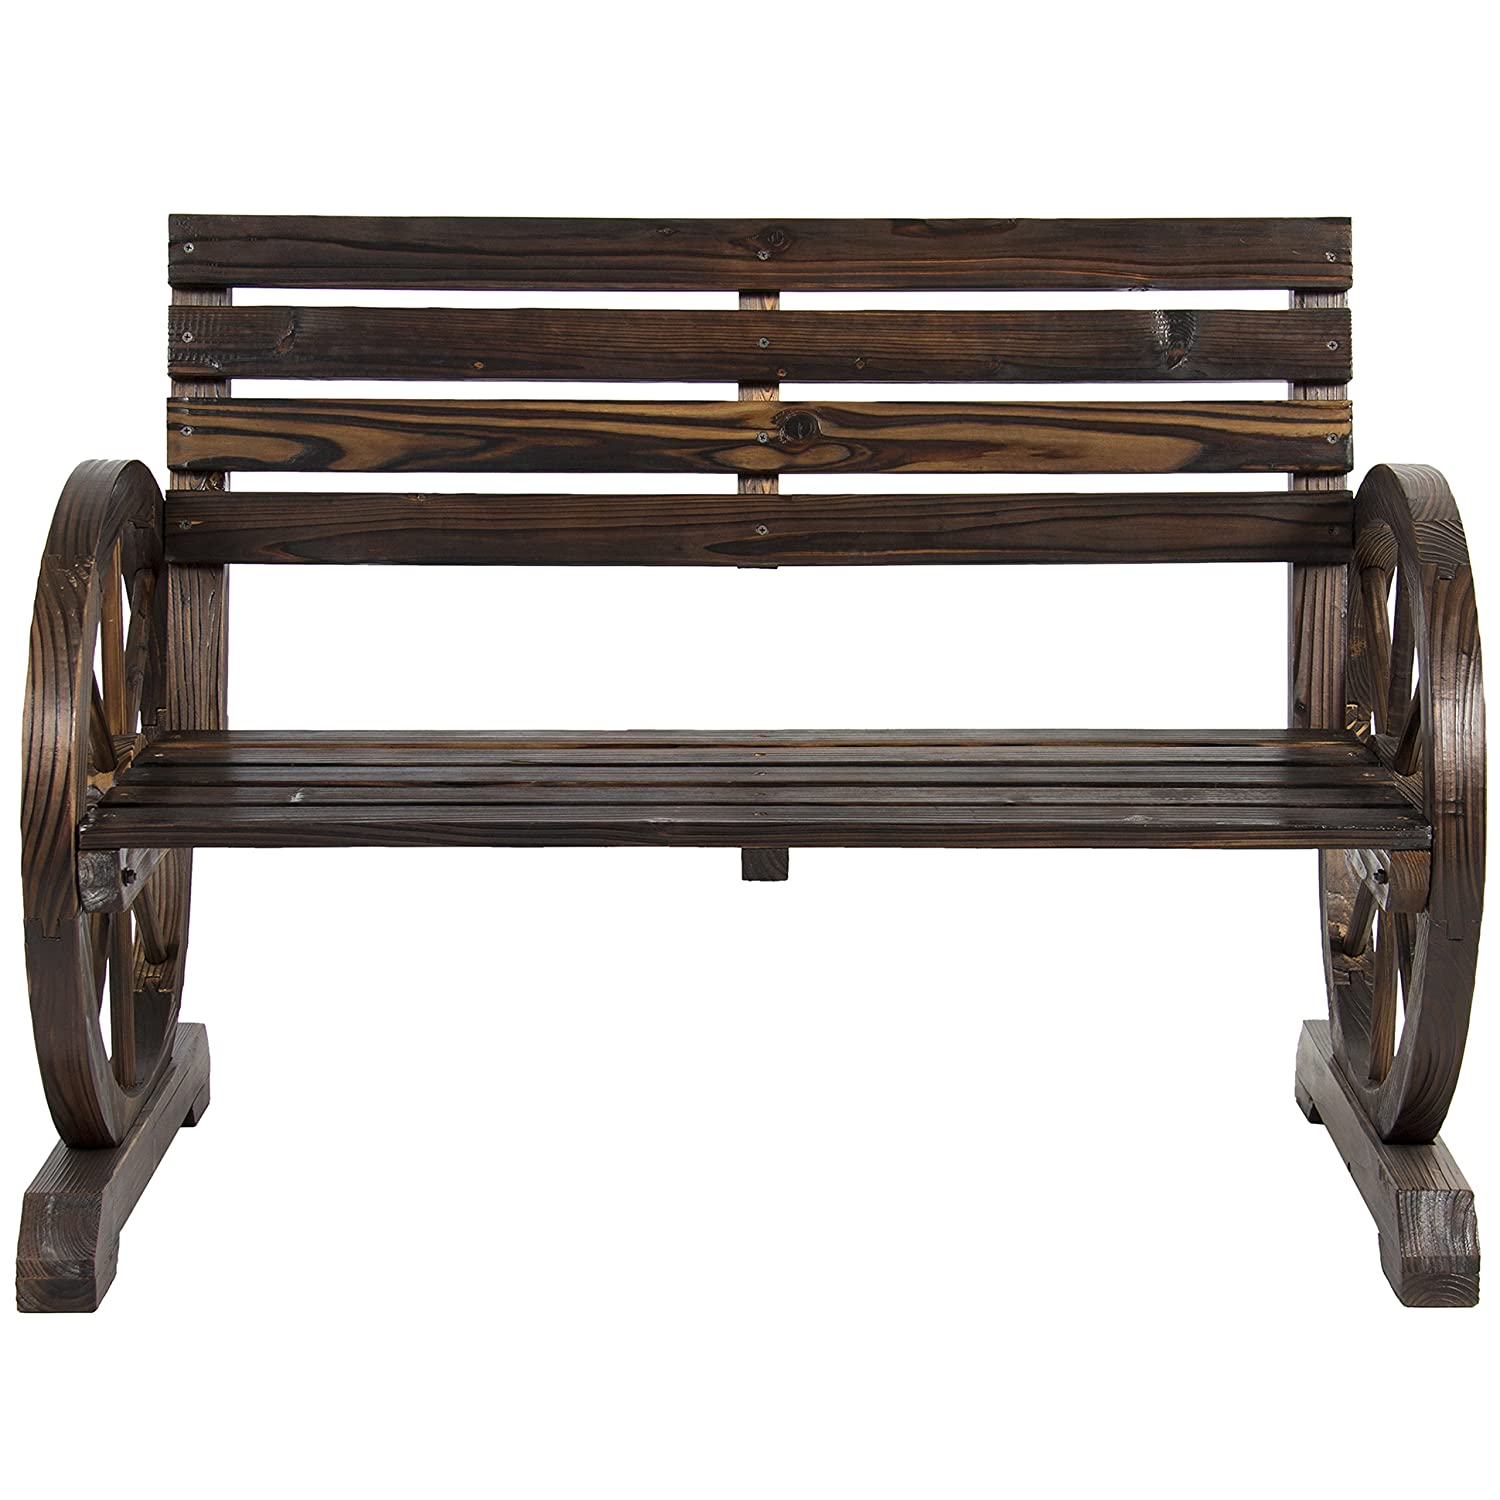 wooden design furniture. Amazon.com : Best Choice Products Patio Garden Wooden Wagon Wheel Bench Rustic Wood Design Outdoor Furniture \u0026 T